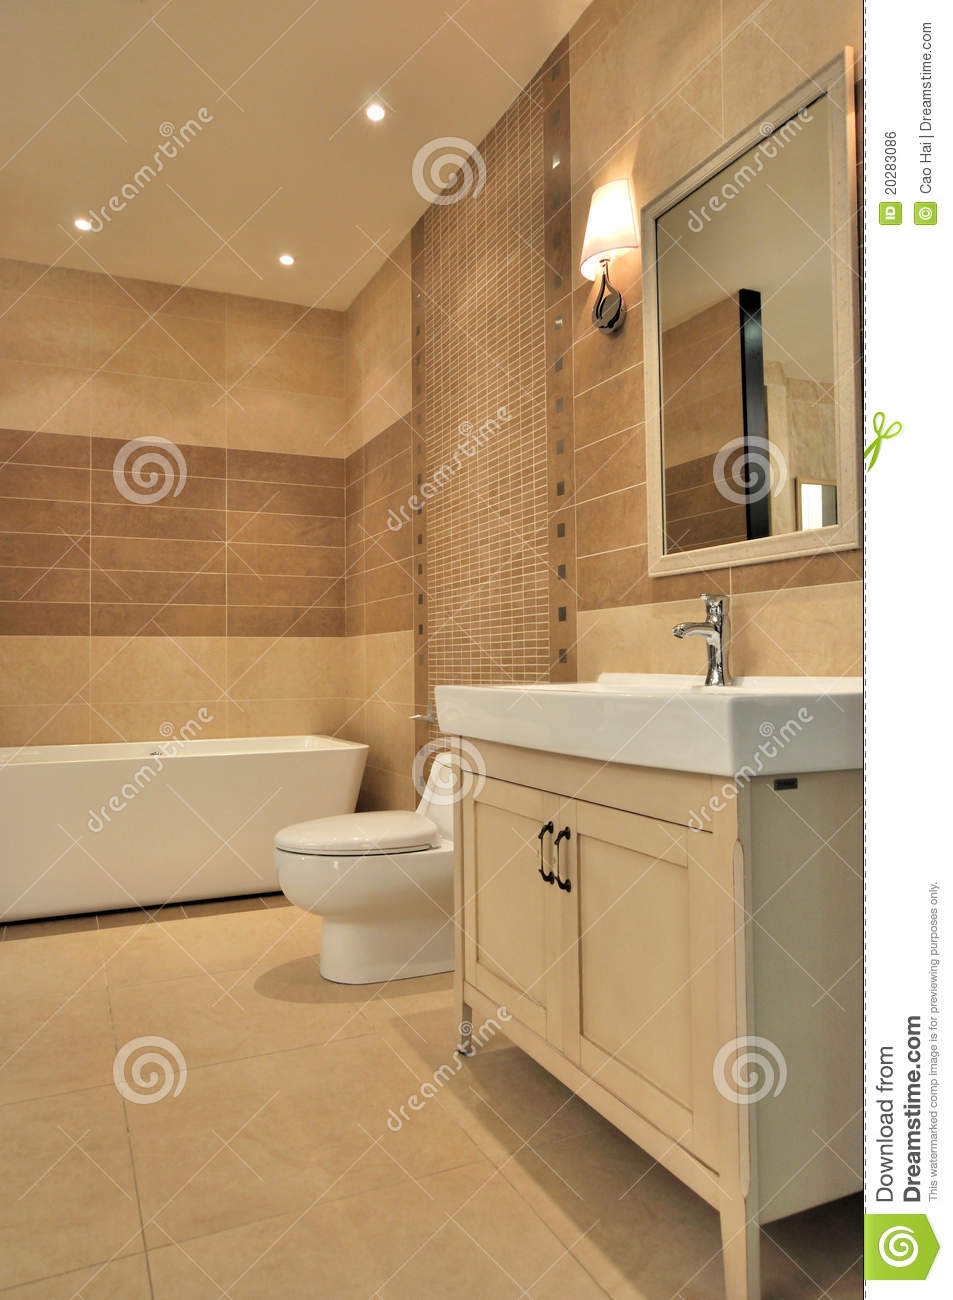 Washroom Interior Stock Photo Image Of Mirror Water